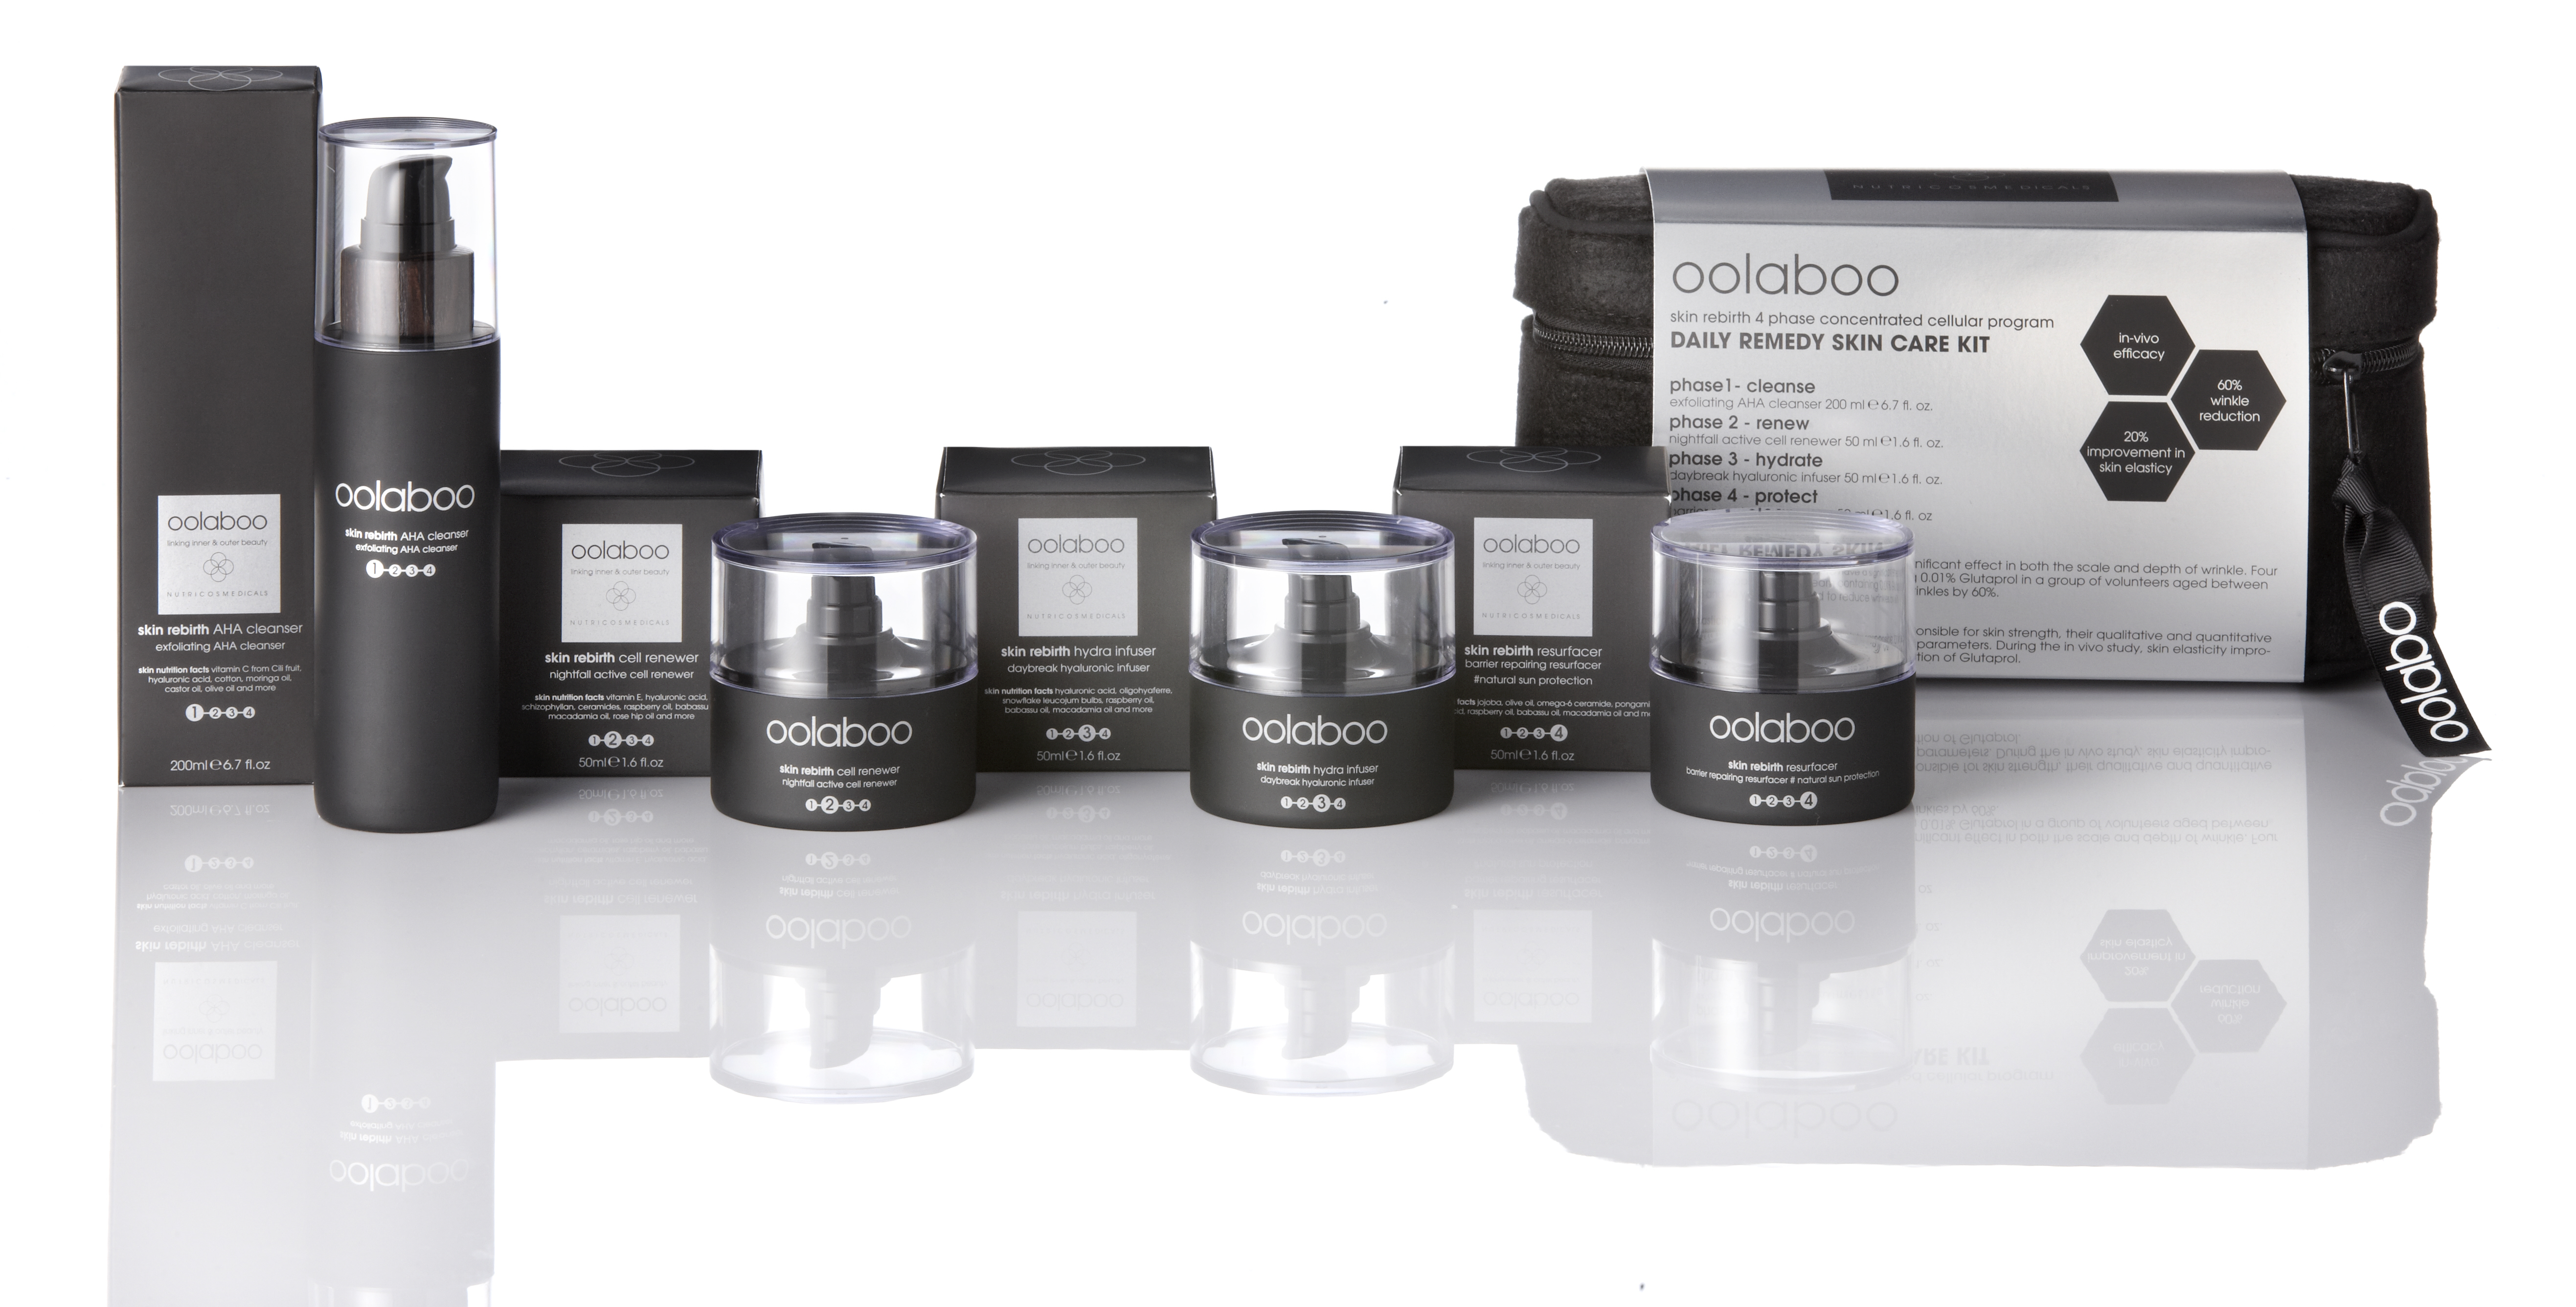 Oolaboo-daily remedy skin care kit wit.jpg